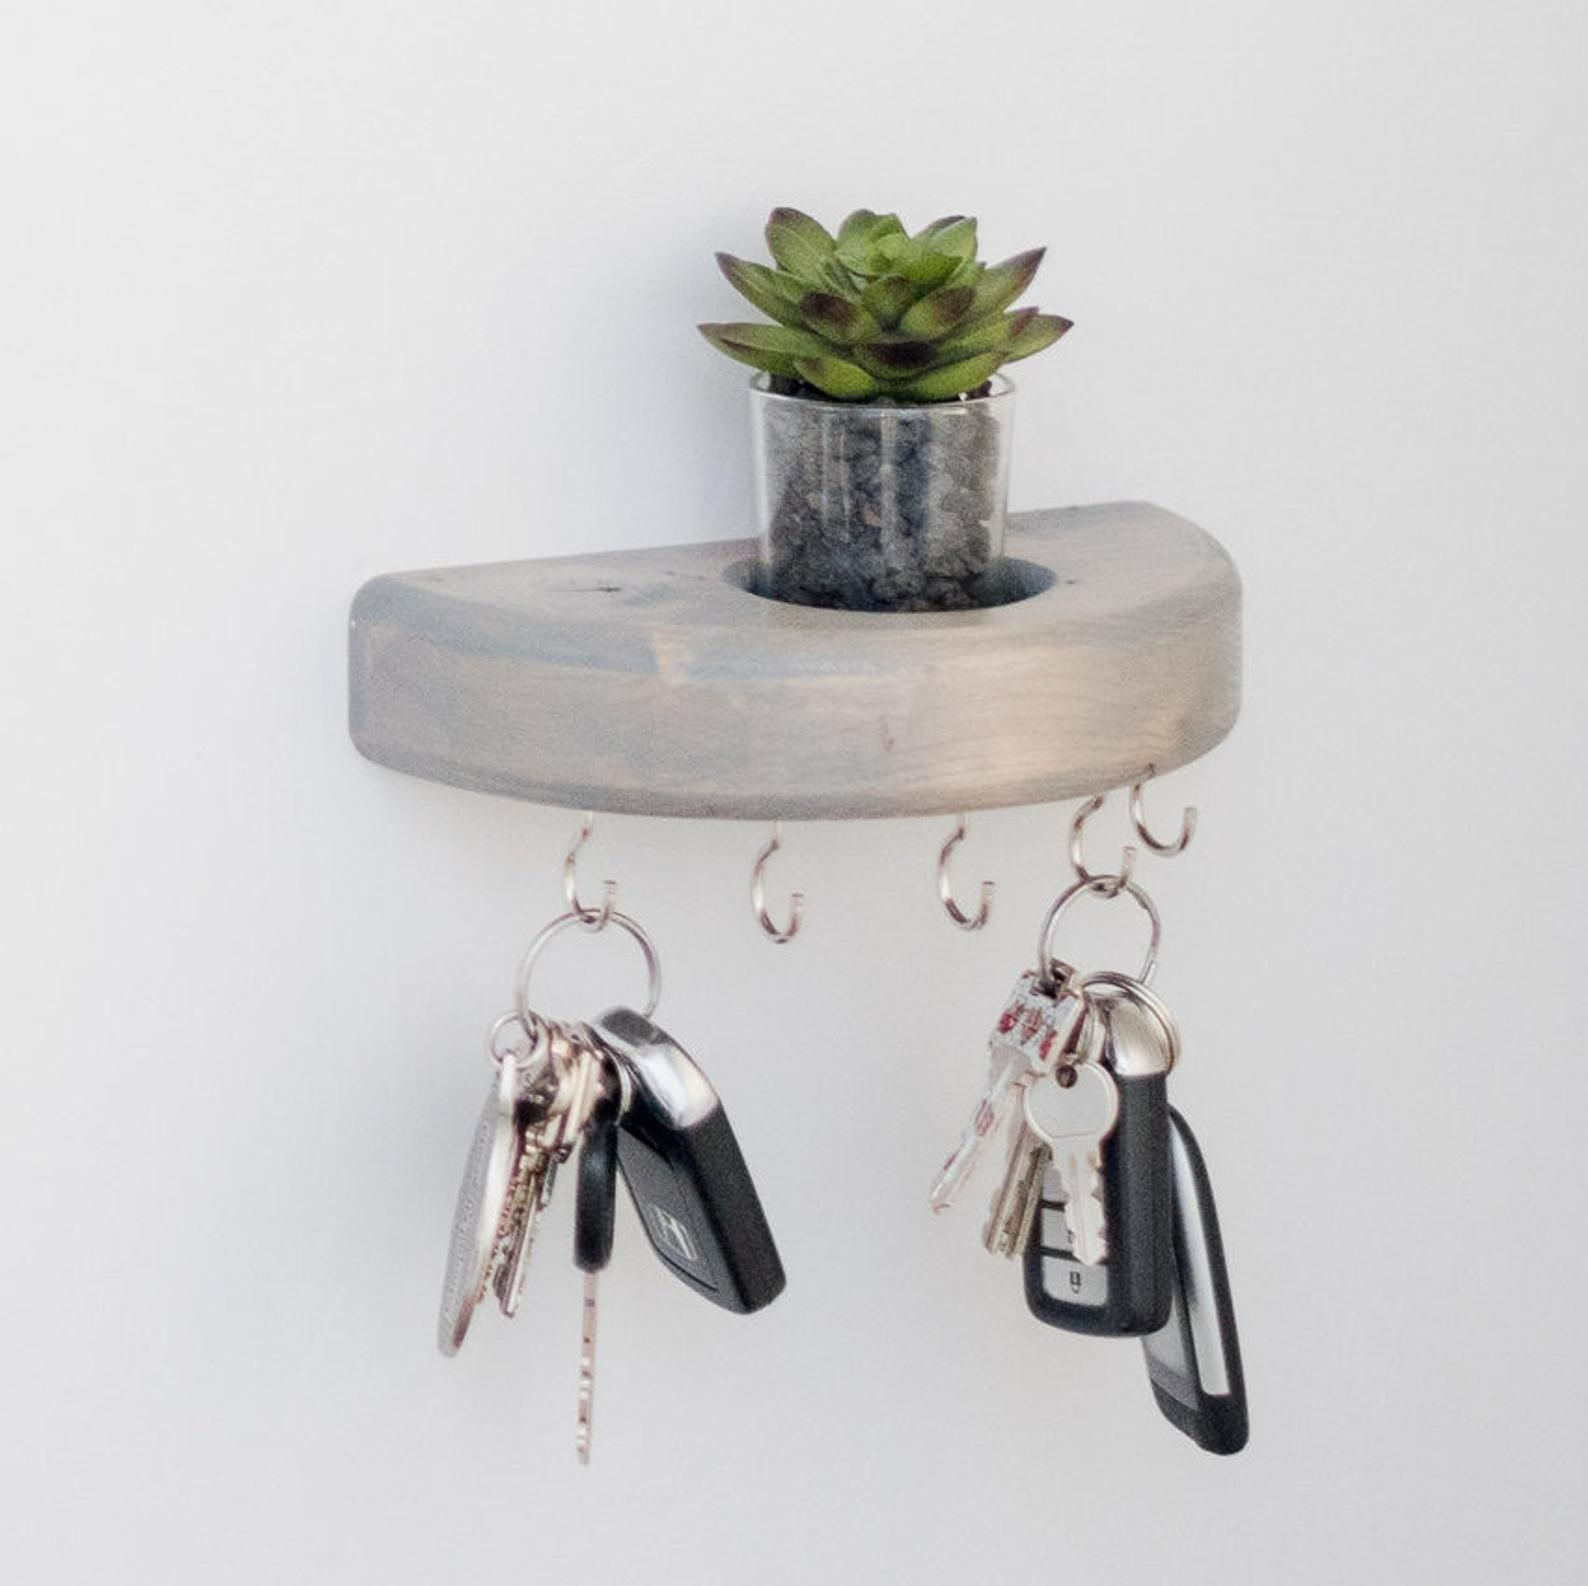 Round Key Holder For Wall Faux Succulent Planter Key Holder Wall Hooks Succulent Decor Wall